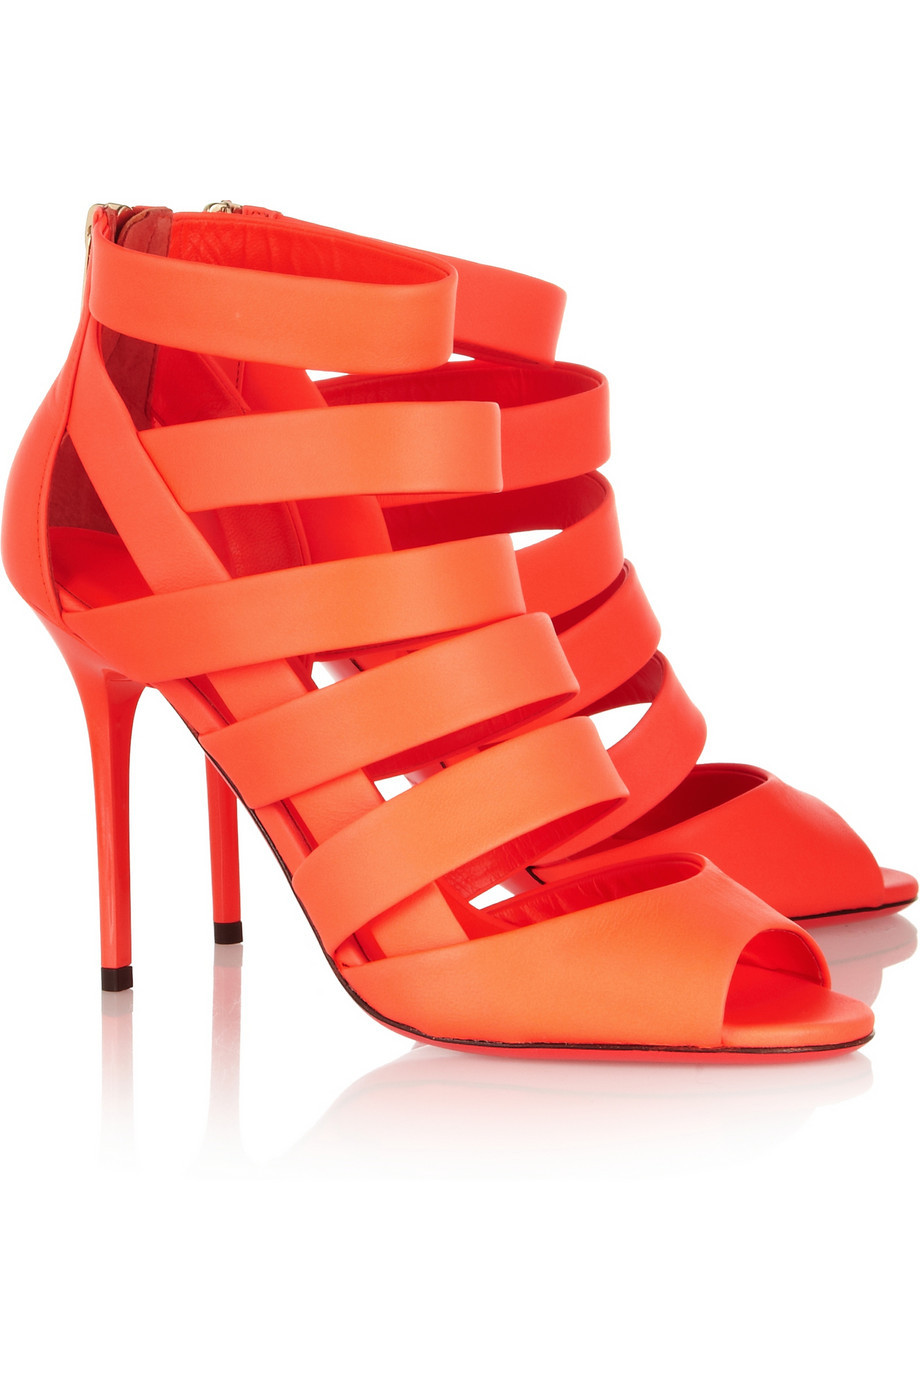 Cheap Women Orange Shoes, find Women Orange Shoes deals on line at ...